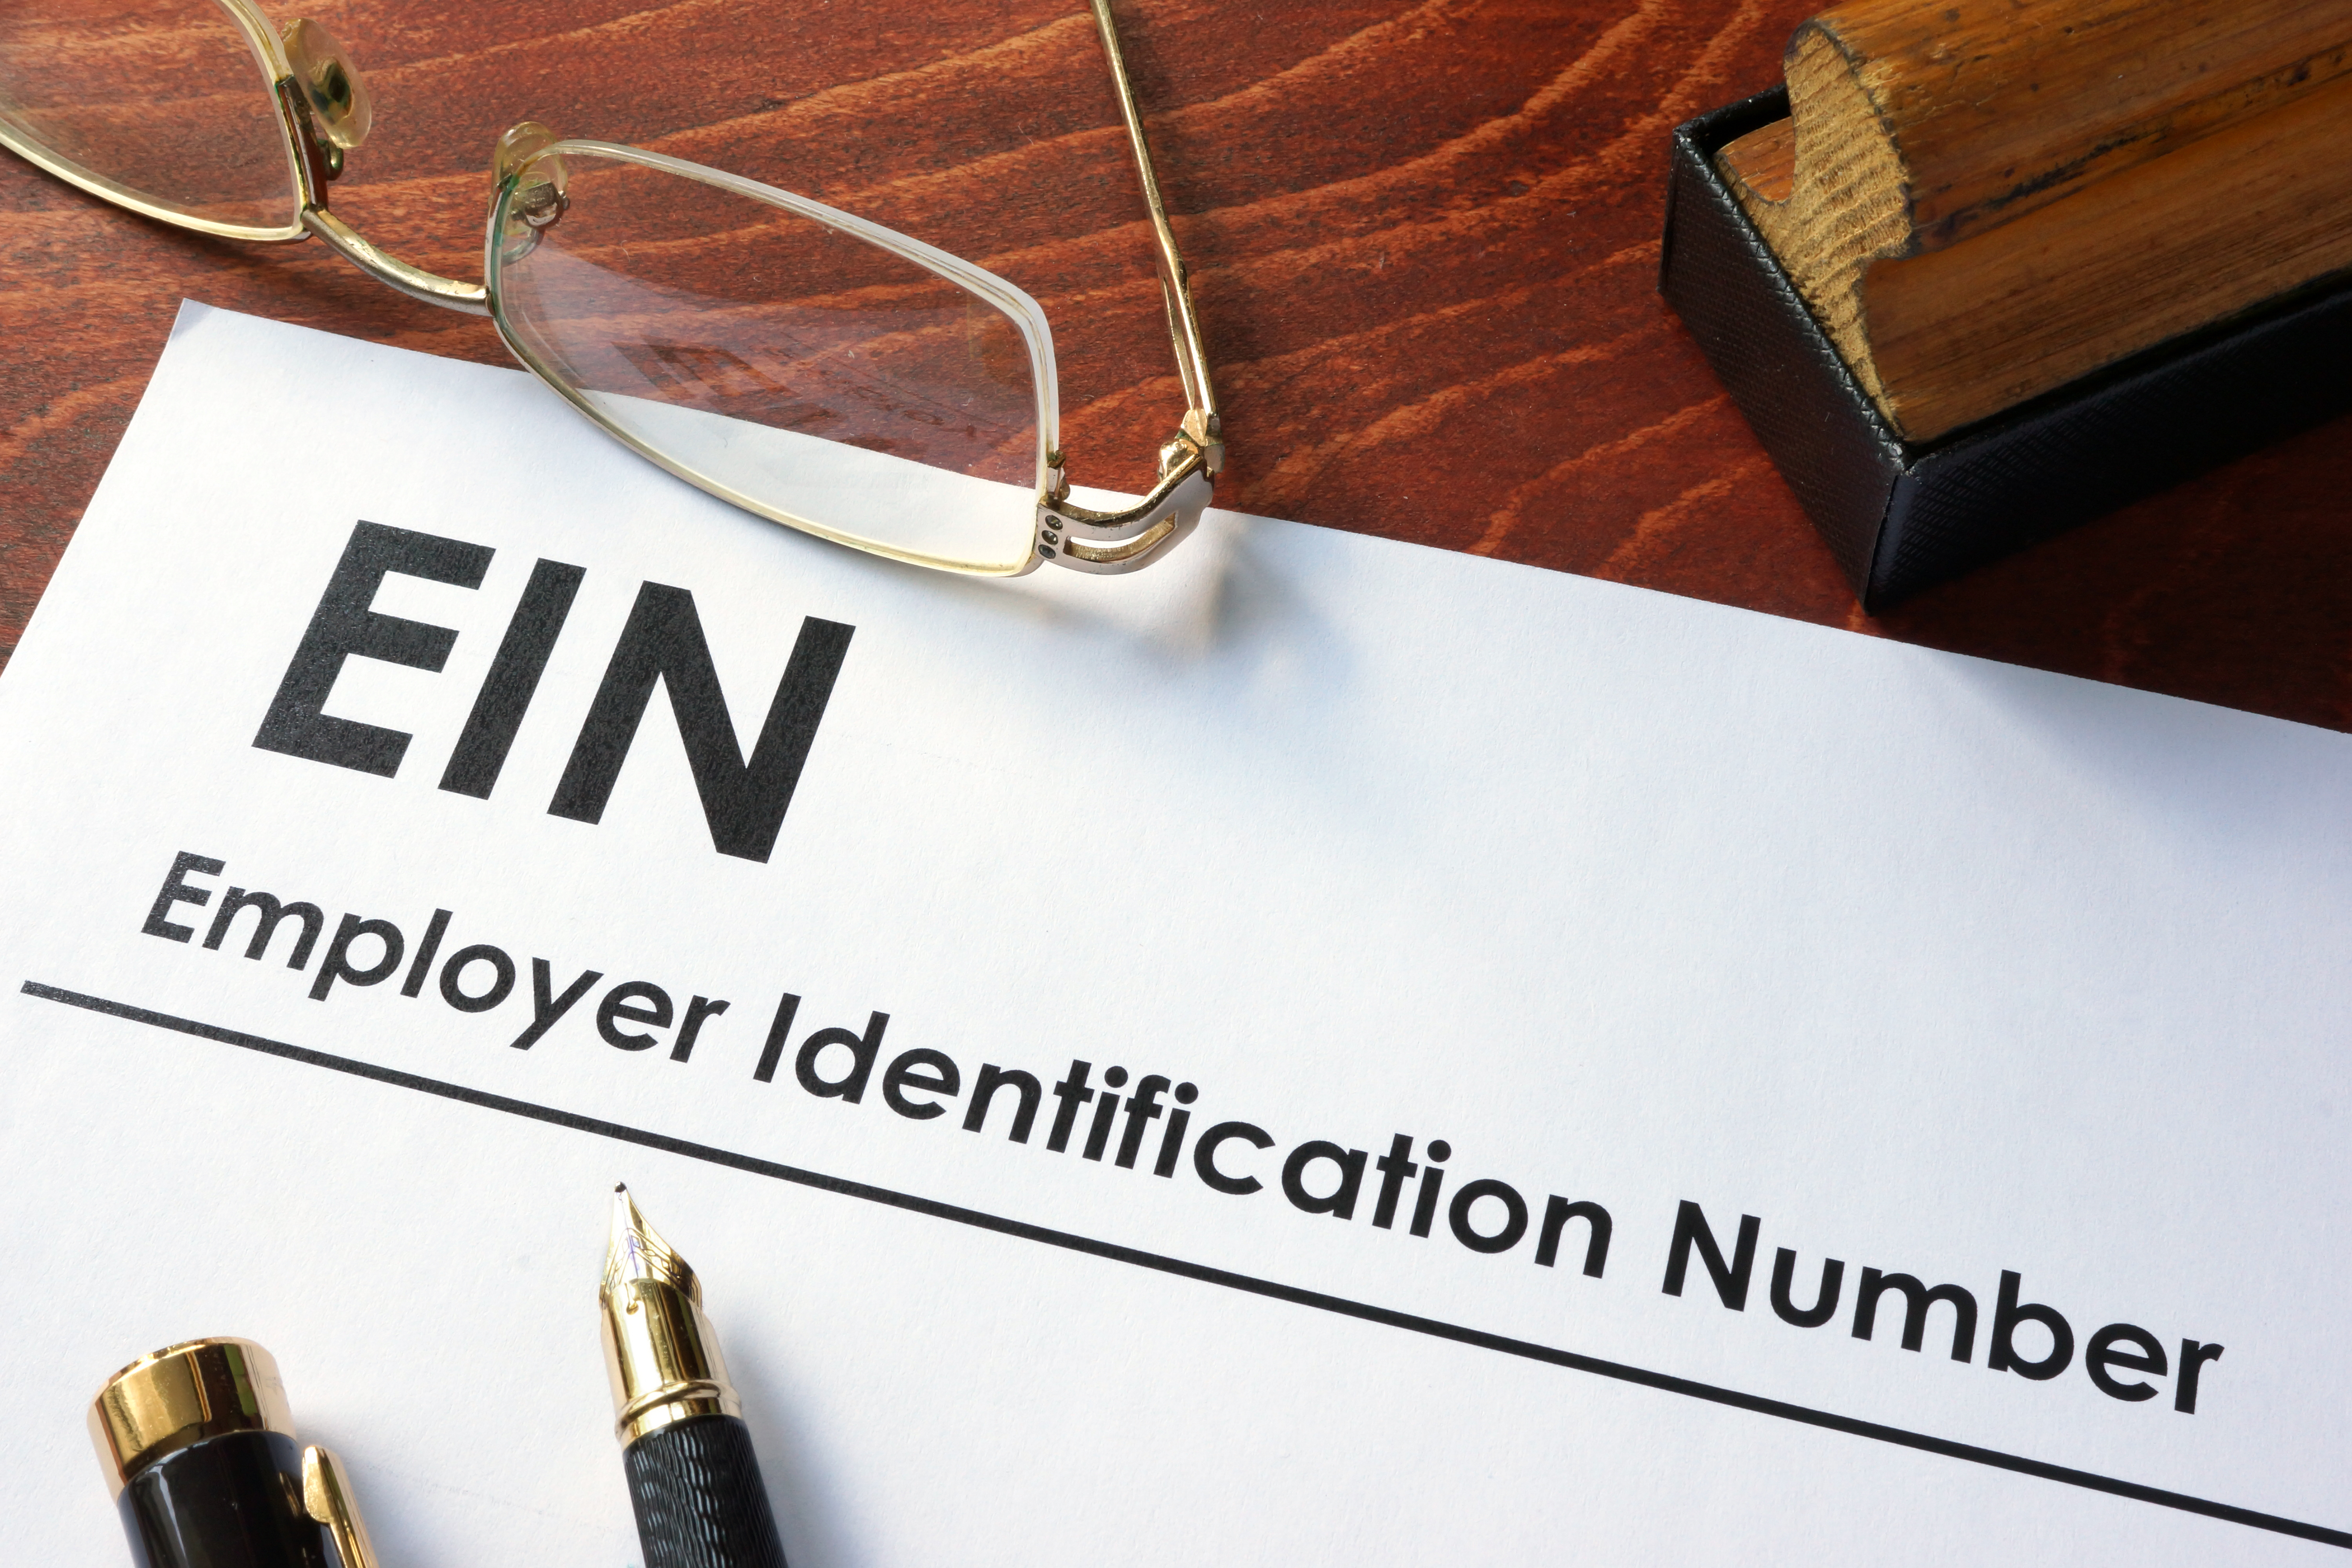 How to Find My Federal Employer Identification Number